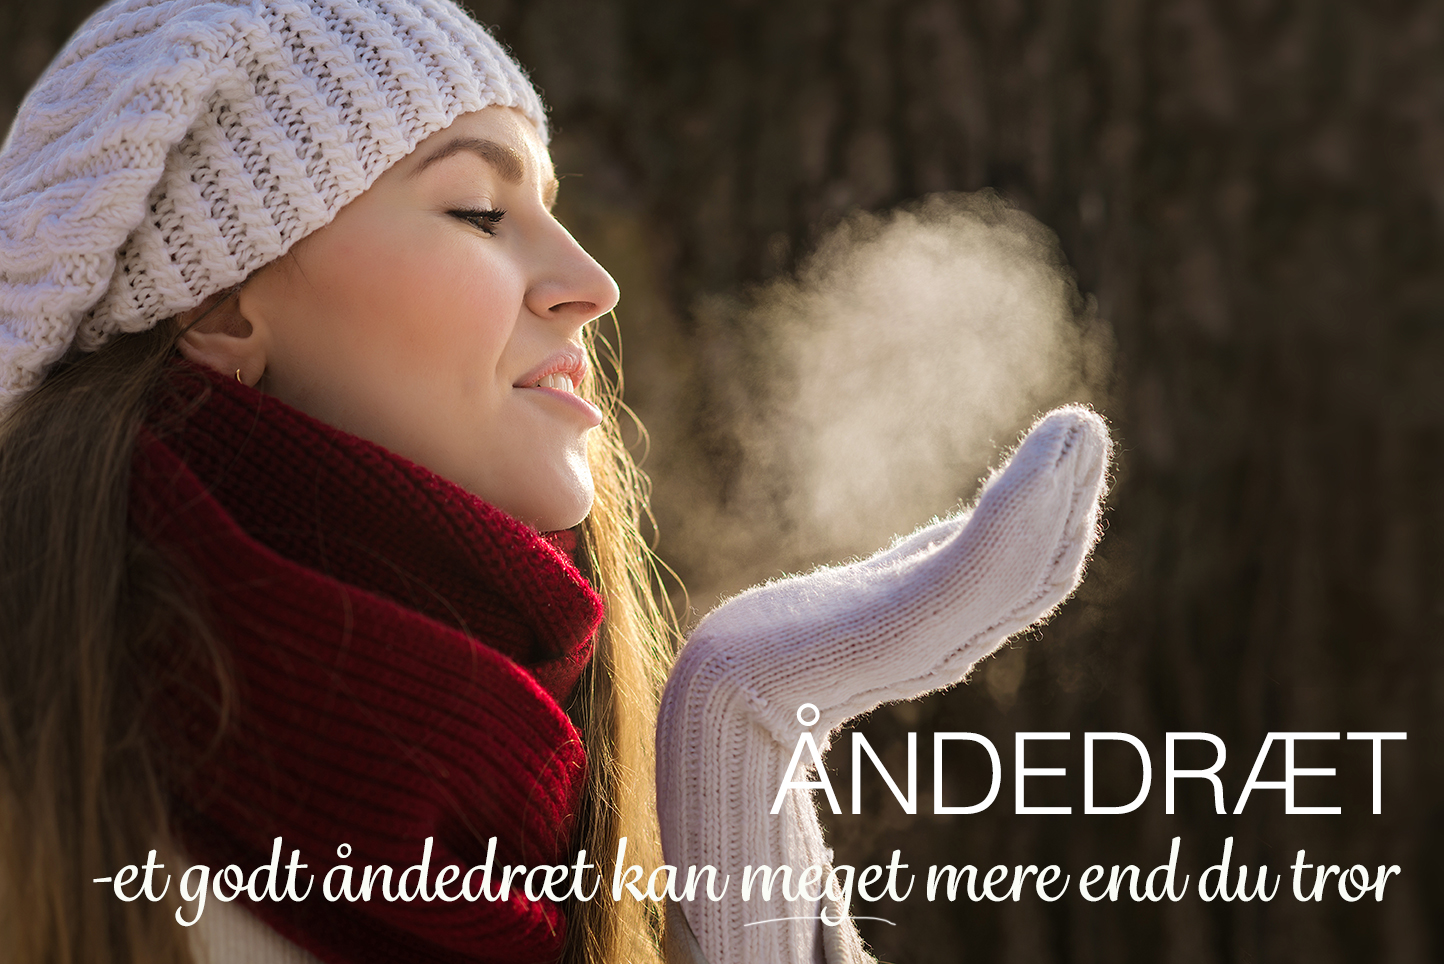 aandedraet-featured